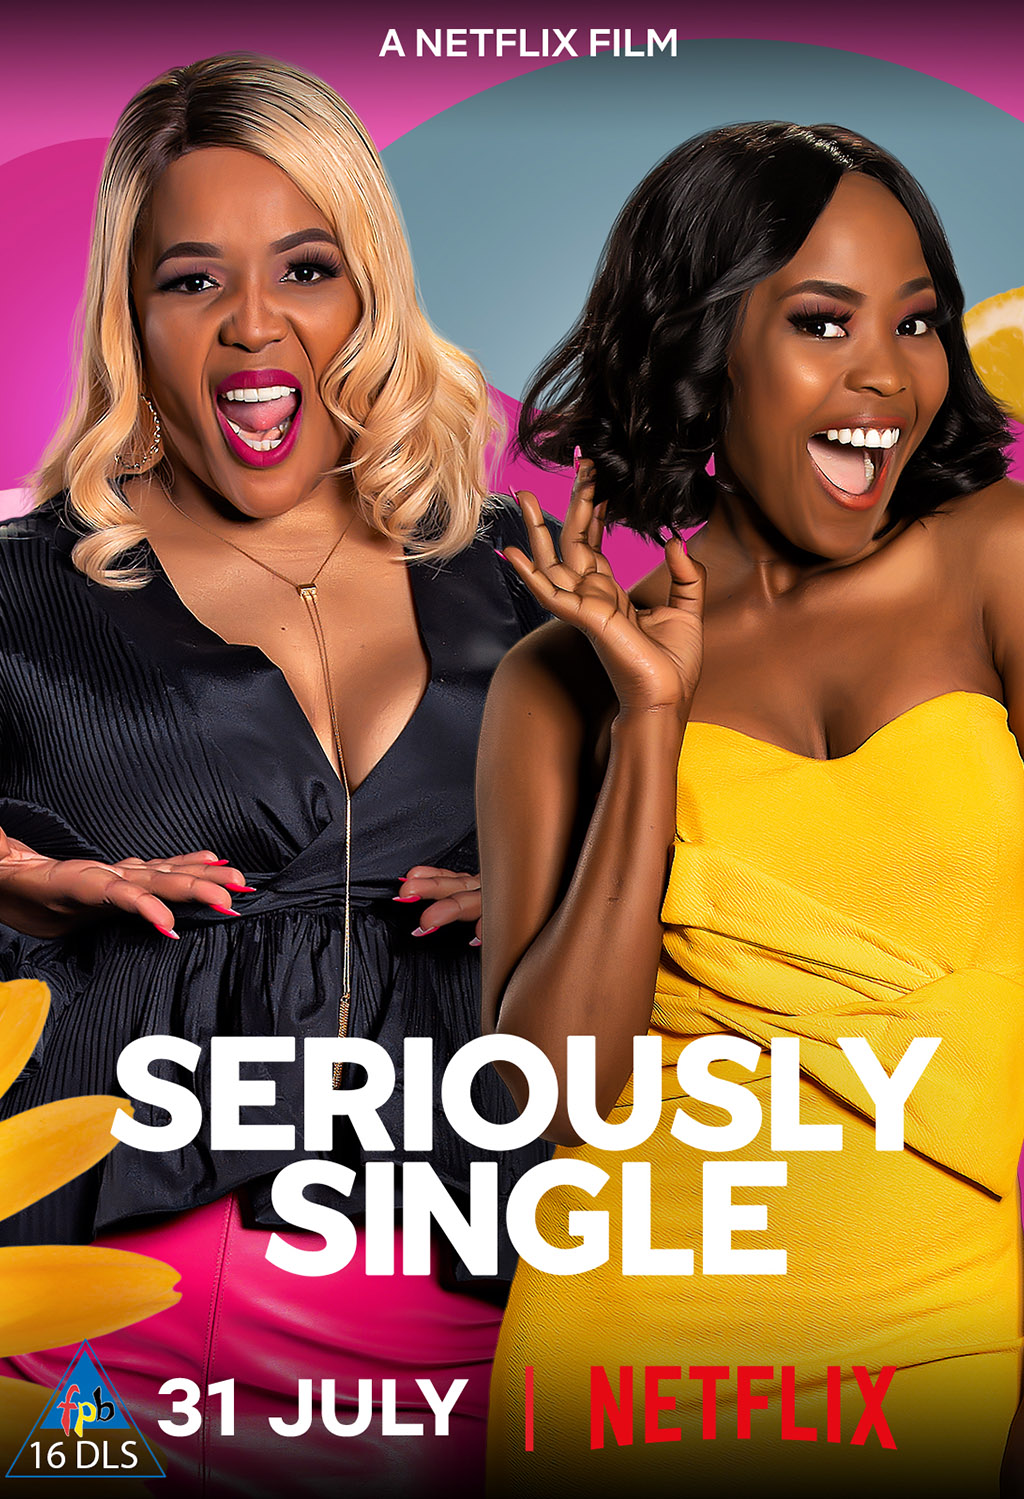 Seriously Single Movie Poster - FPB